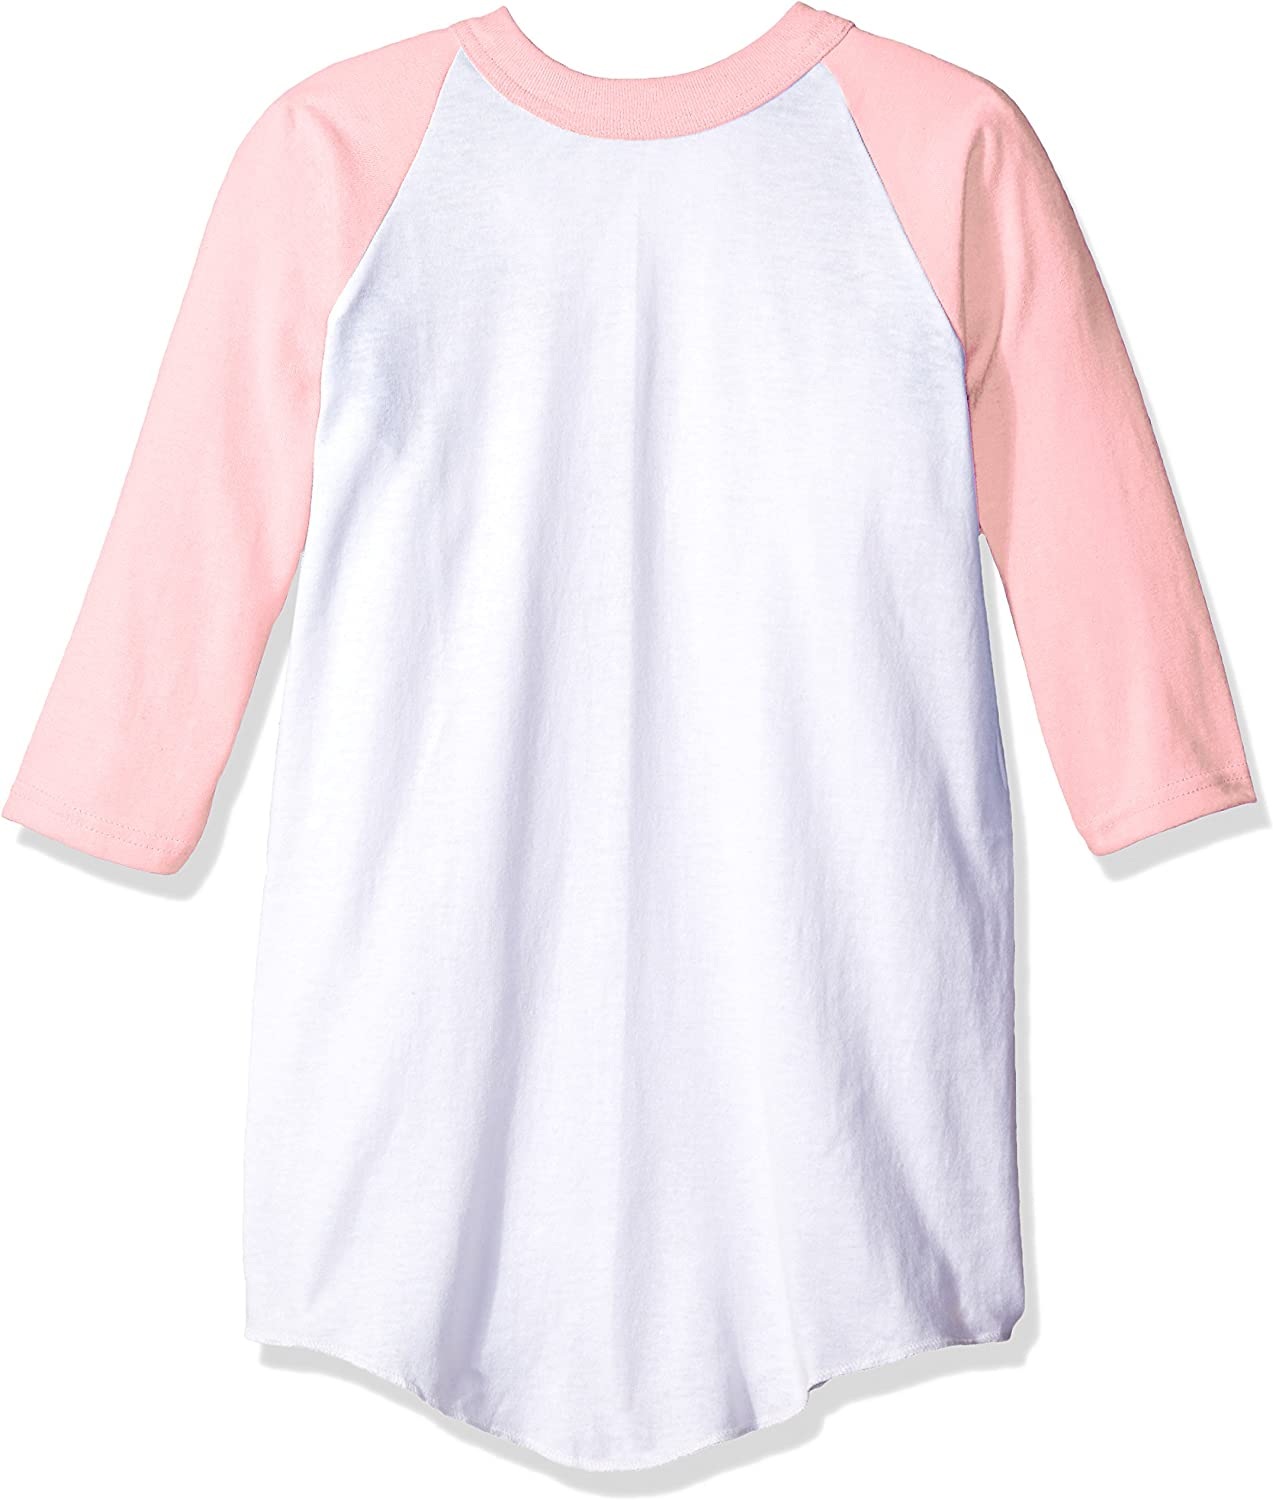 Soffe Big Boys' Baseball Jersey At the price Max 55% OFF of surprise